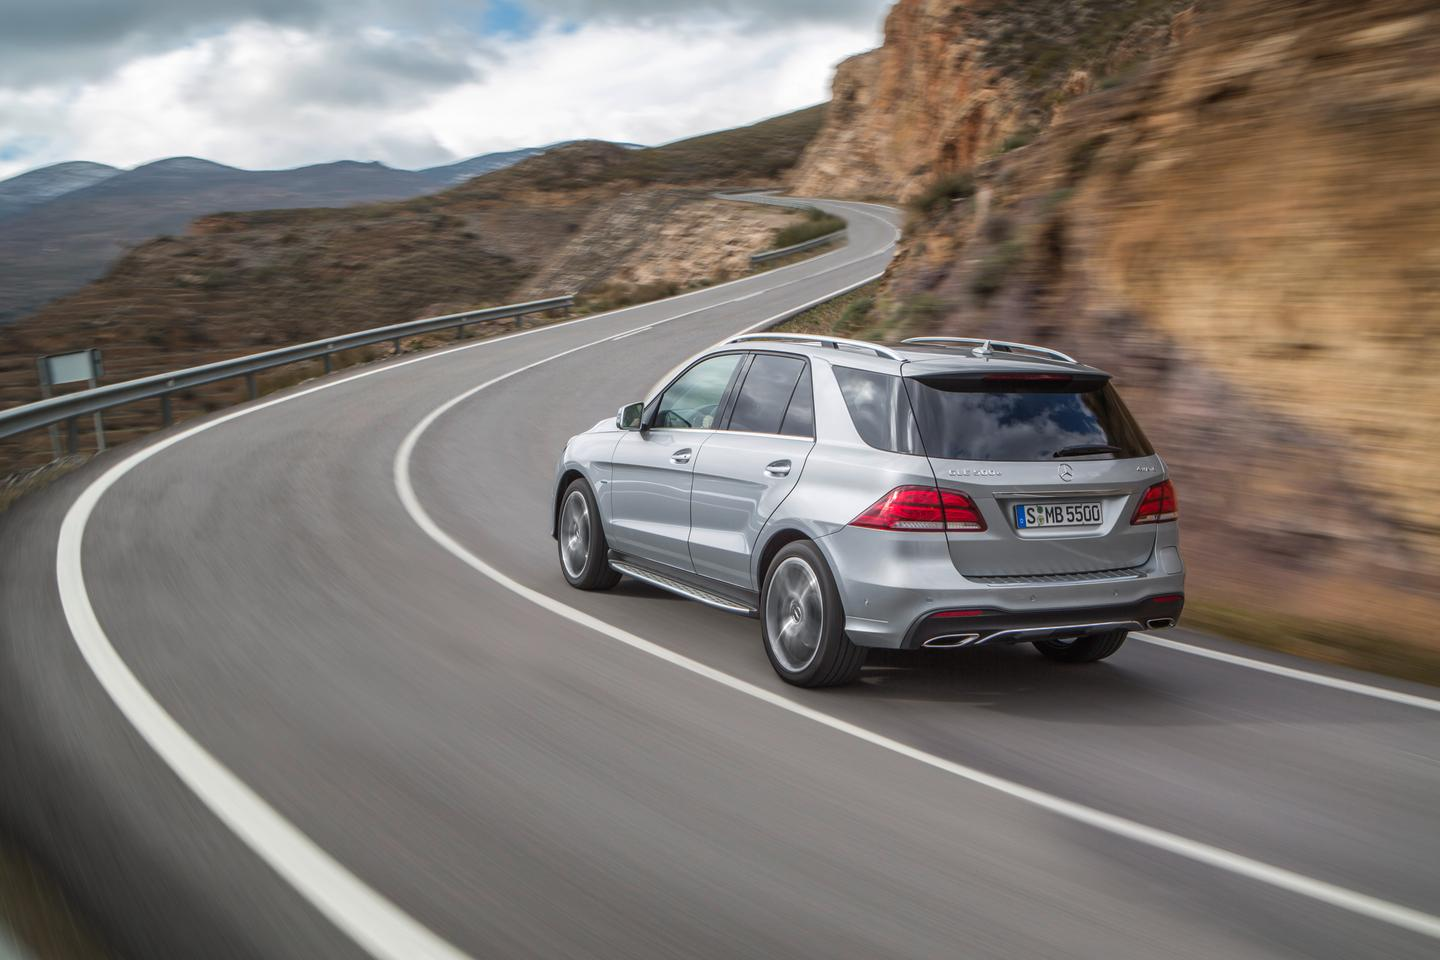 Although the styling remains much the same, the GLE is packing a range of new engines